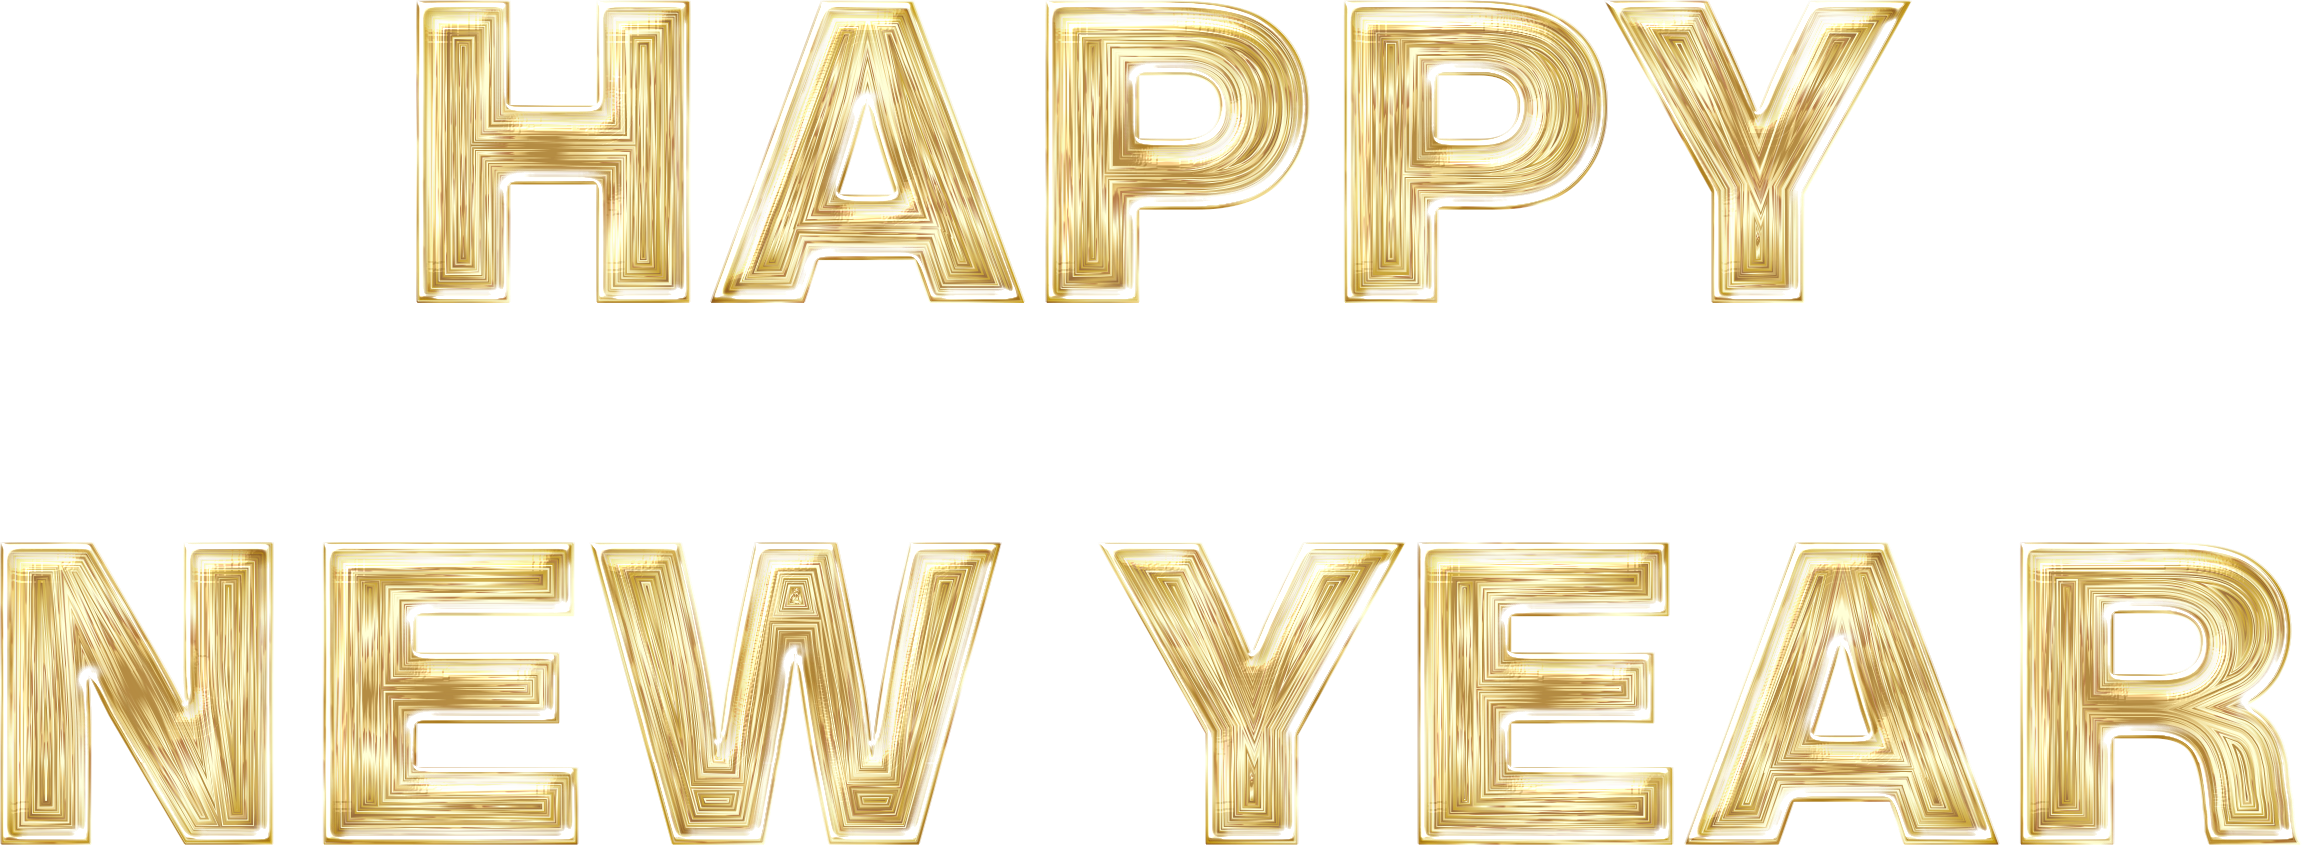 Happy-New-Year-Gold-Enhanced-2400px.png